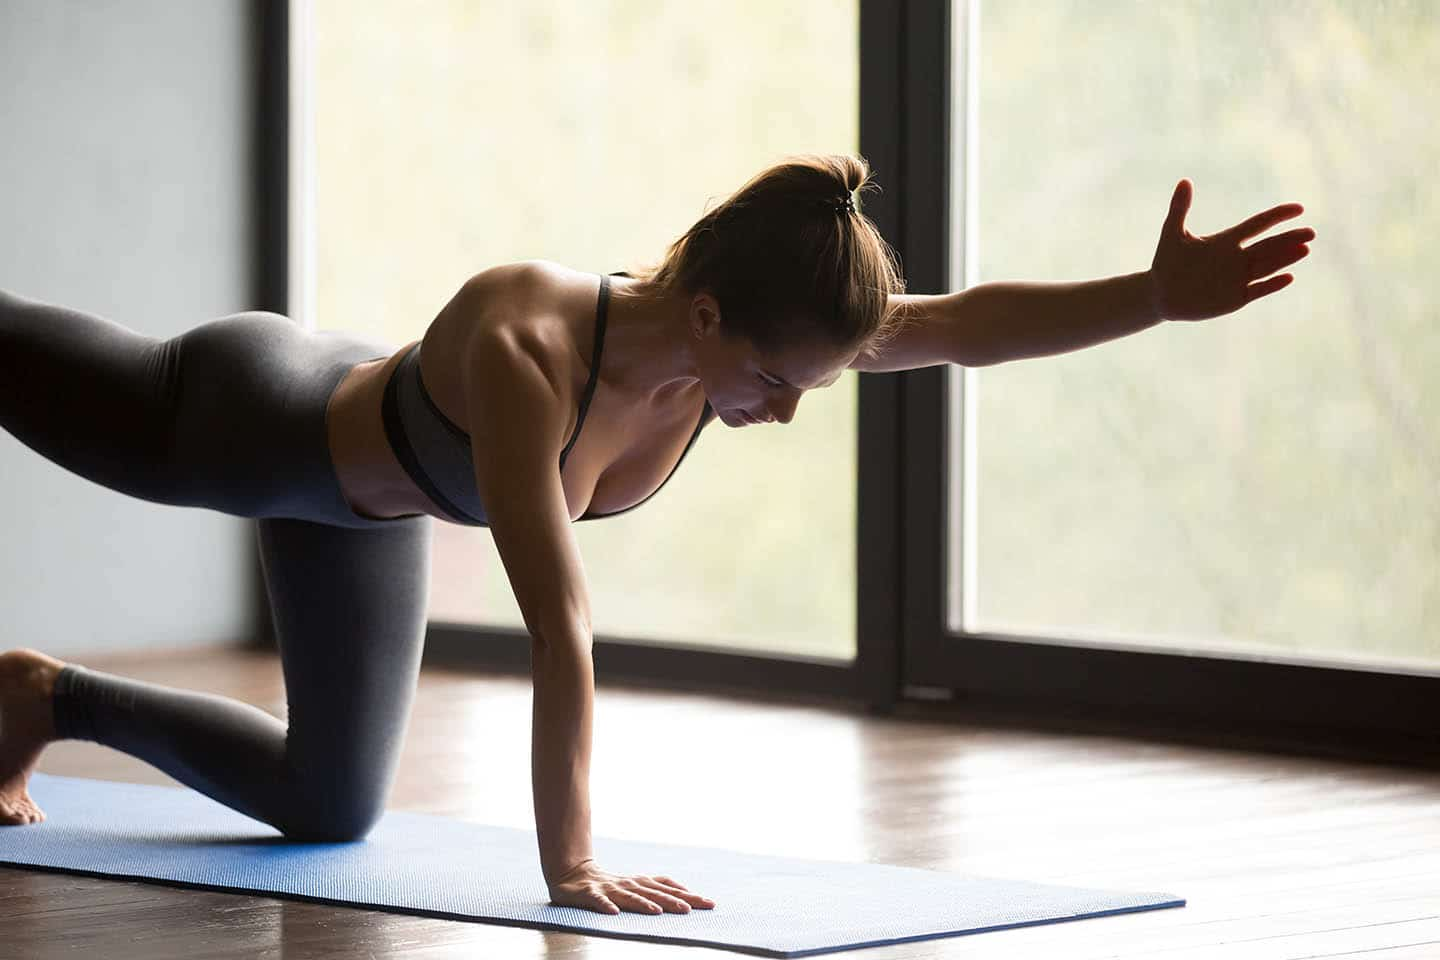 A woman wearing athletic clothes stretching on a mat